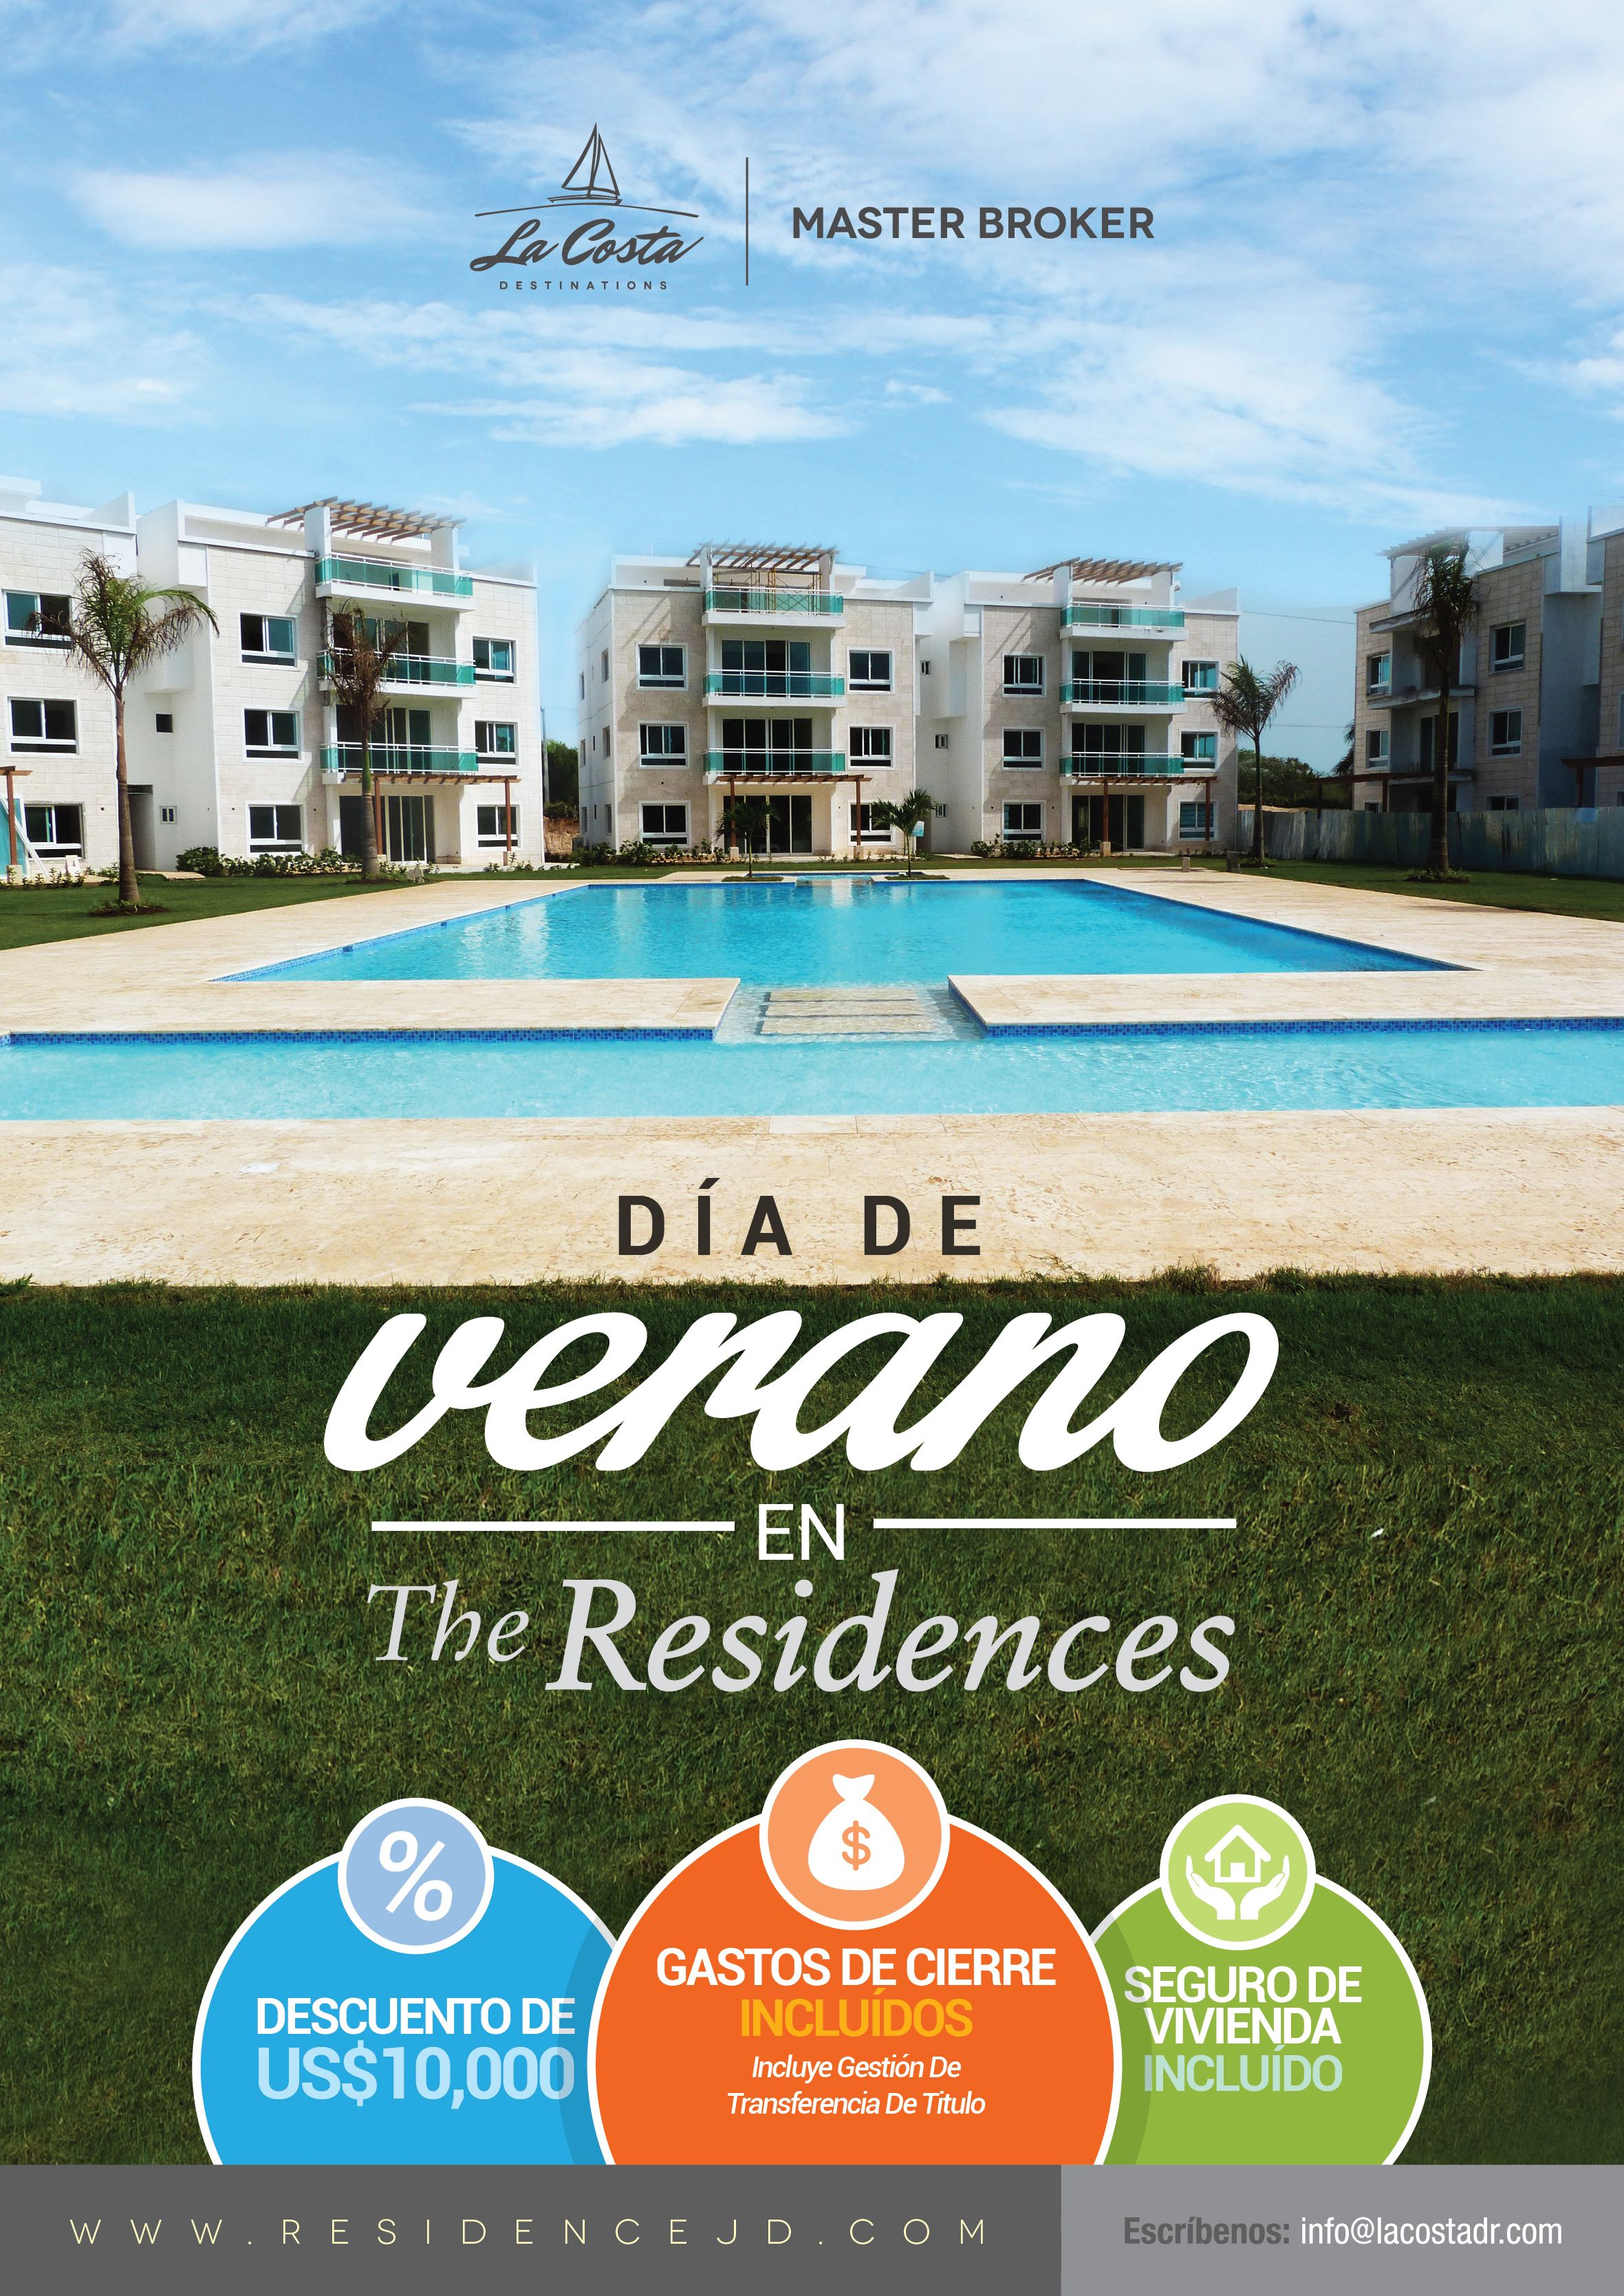 Arte_The_Residences_Promoci_n_Verano-01.jpg